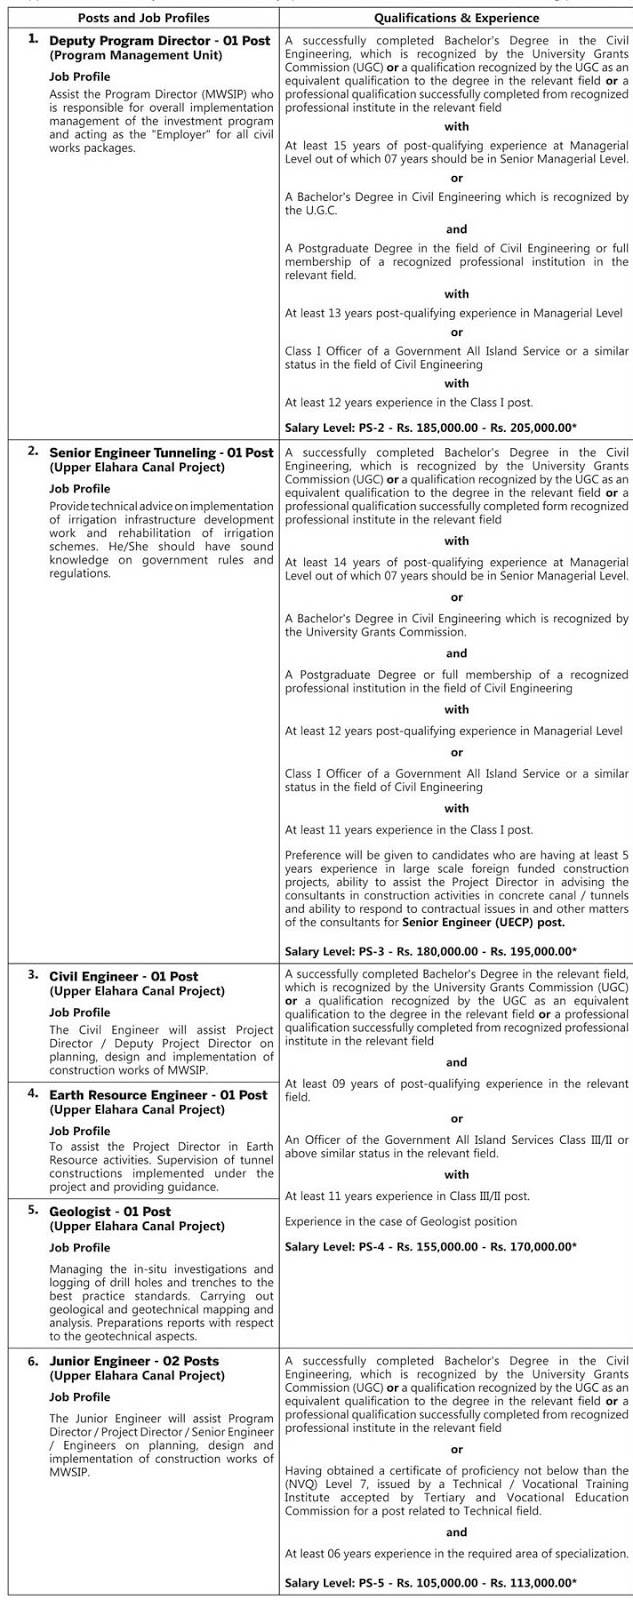 VACANCY IN MINISTRY OF MAHAWELI DEVELOPMENT AND ENVIRONMENT